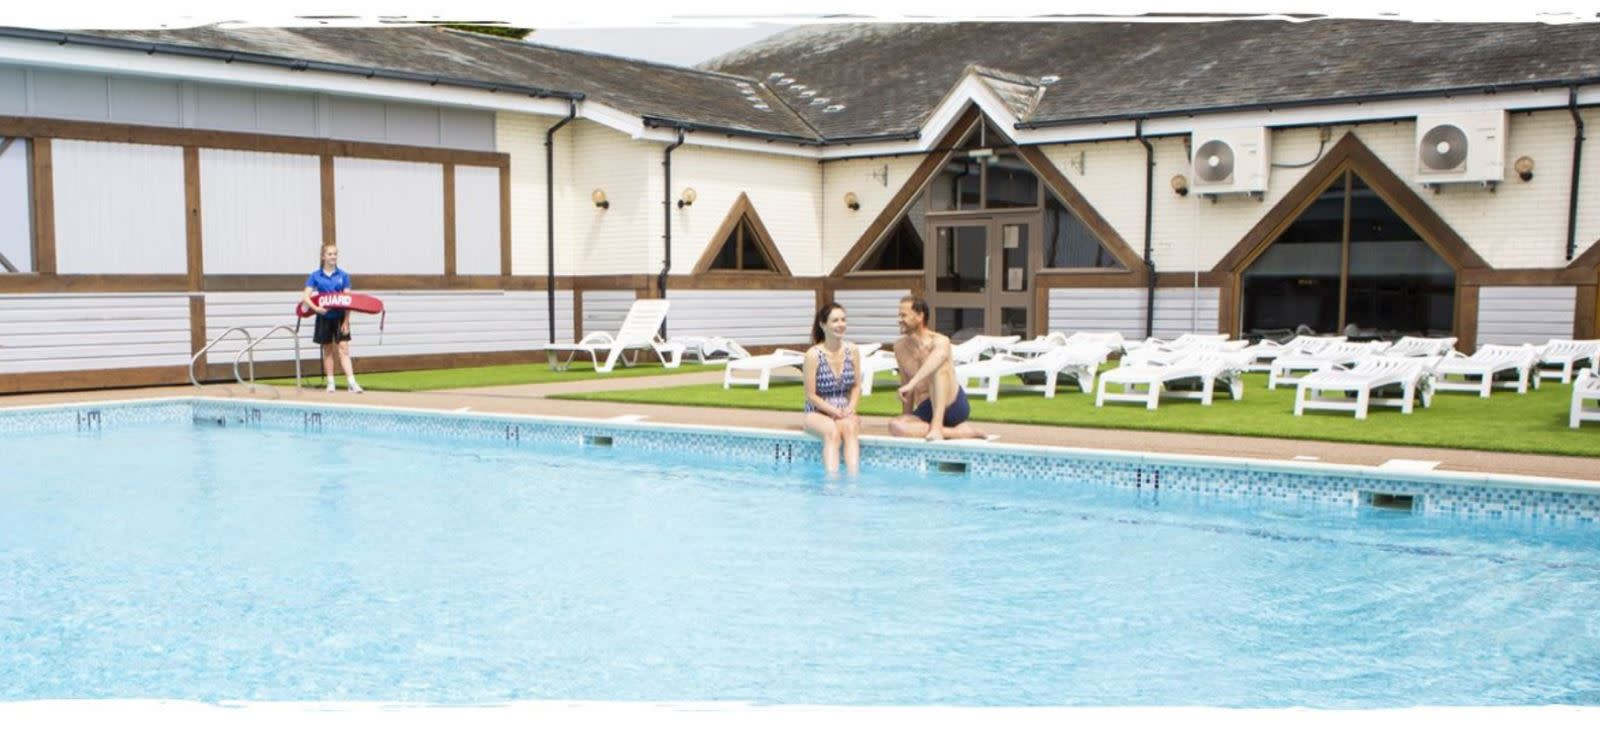 Outdoor swimming pool at Waterside Holiday Park, Dorset